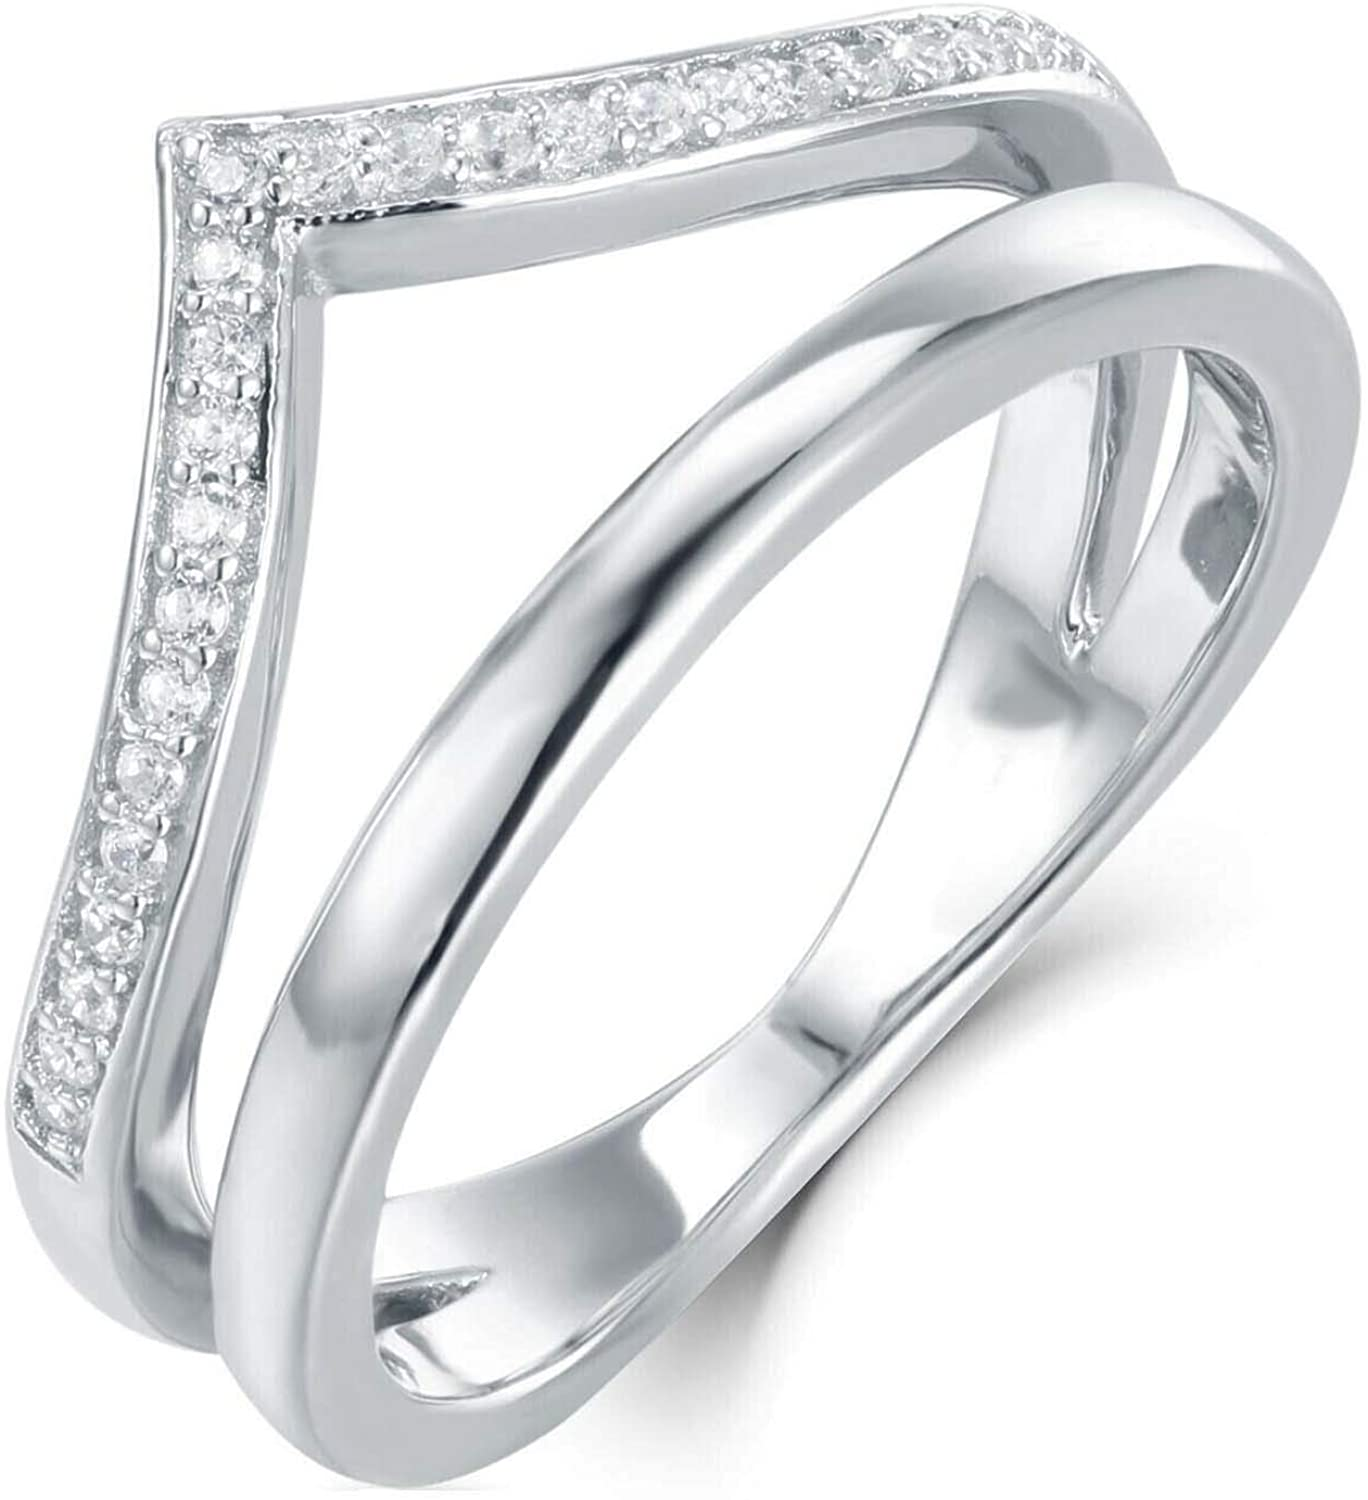 IRA 14k White Gold Plated .925 Silver D/VVS1 Diamond Ring Guard Wedding Band Unique Wrap Half Eternity Band Enhancer Ring 0.30 Ctw